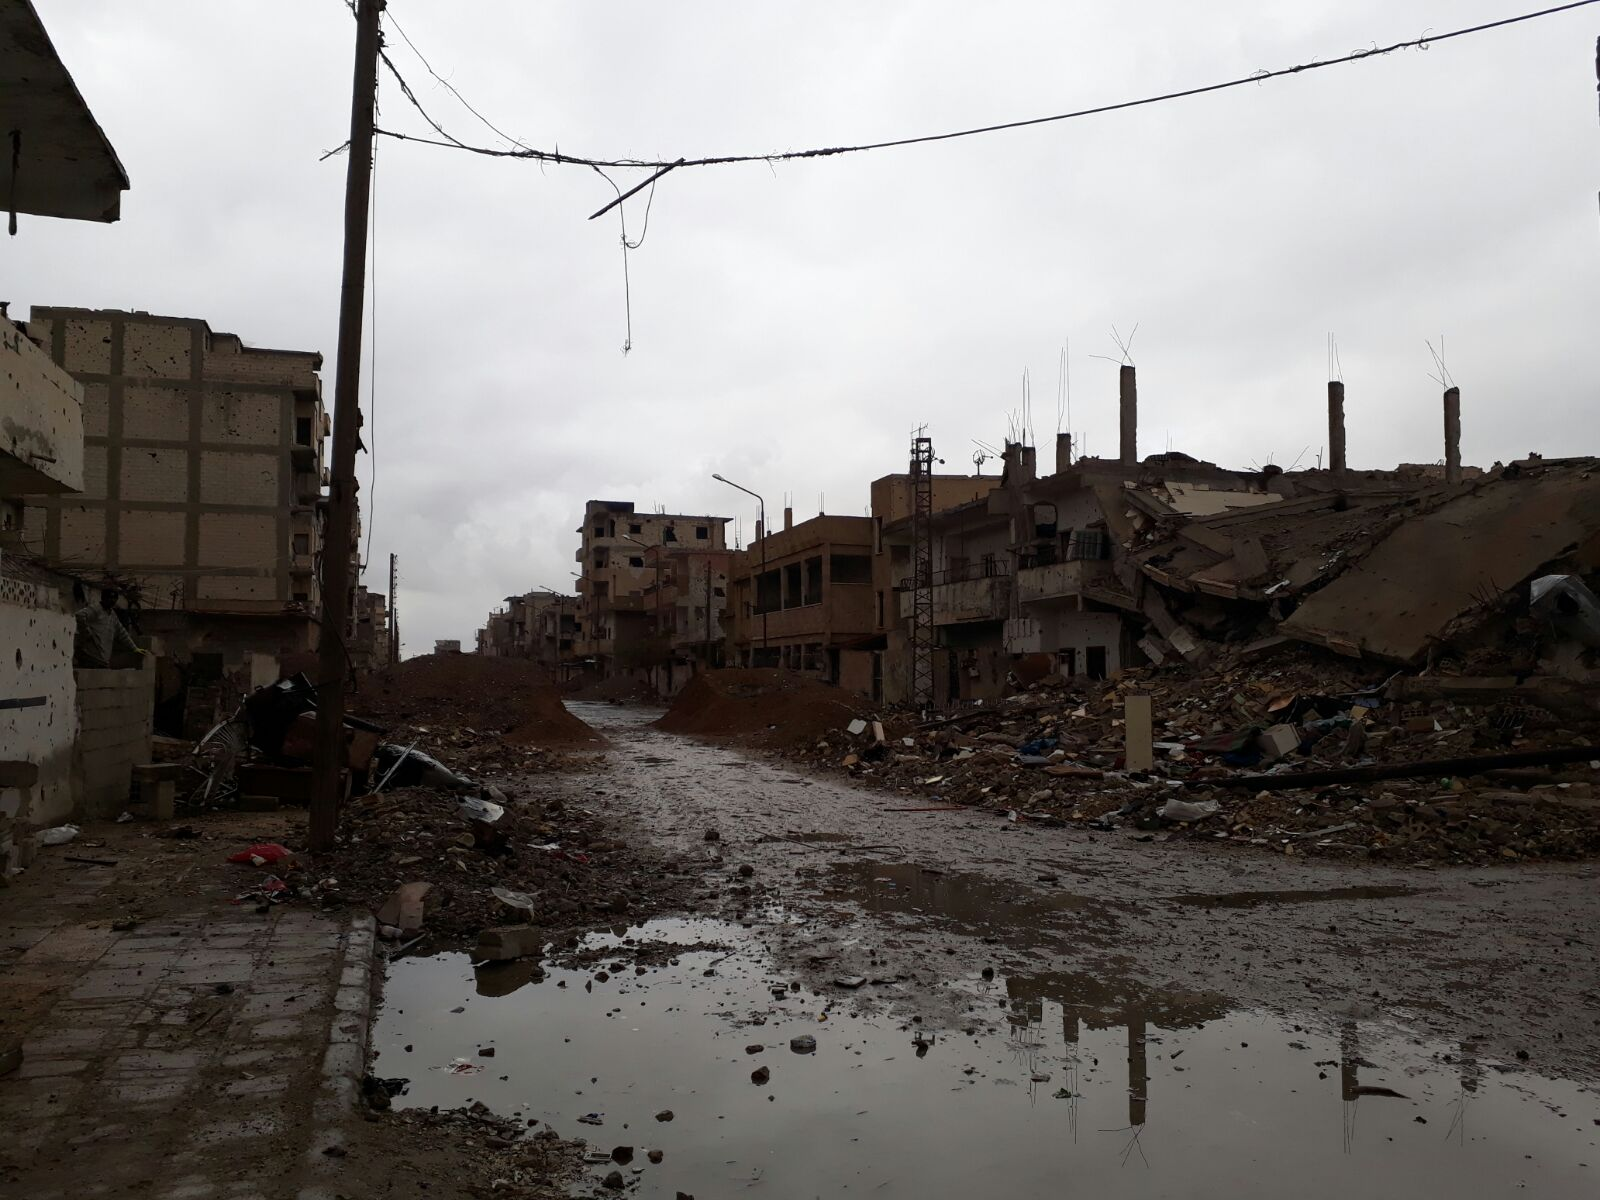 Syria: Households in Ar-Raqqa city face severe